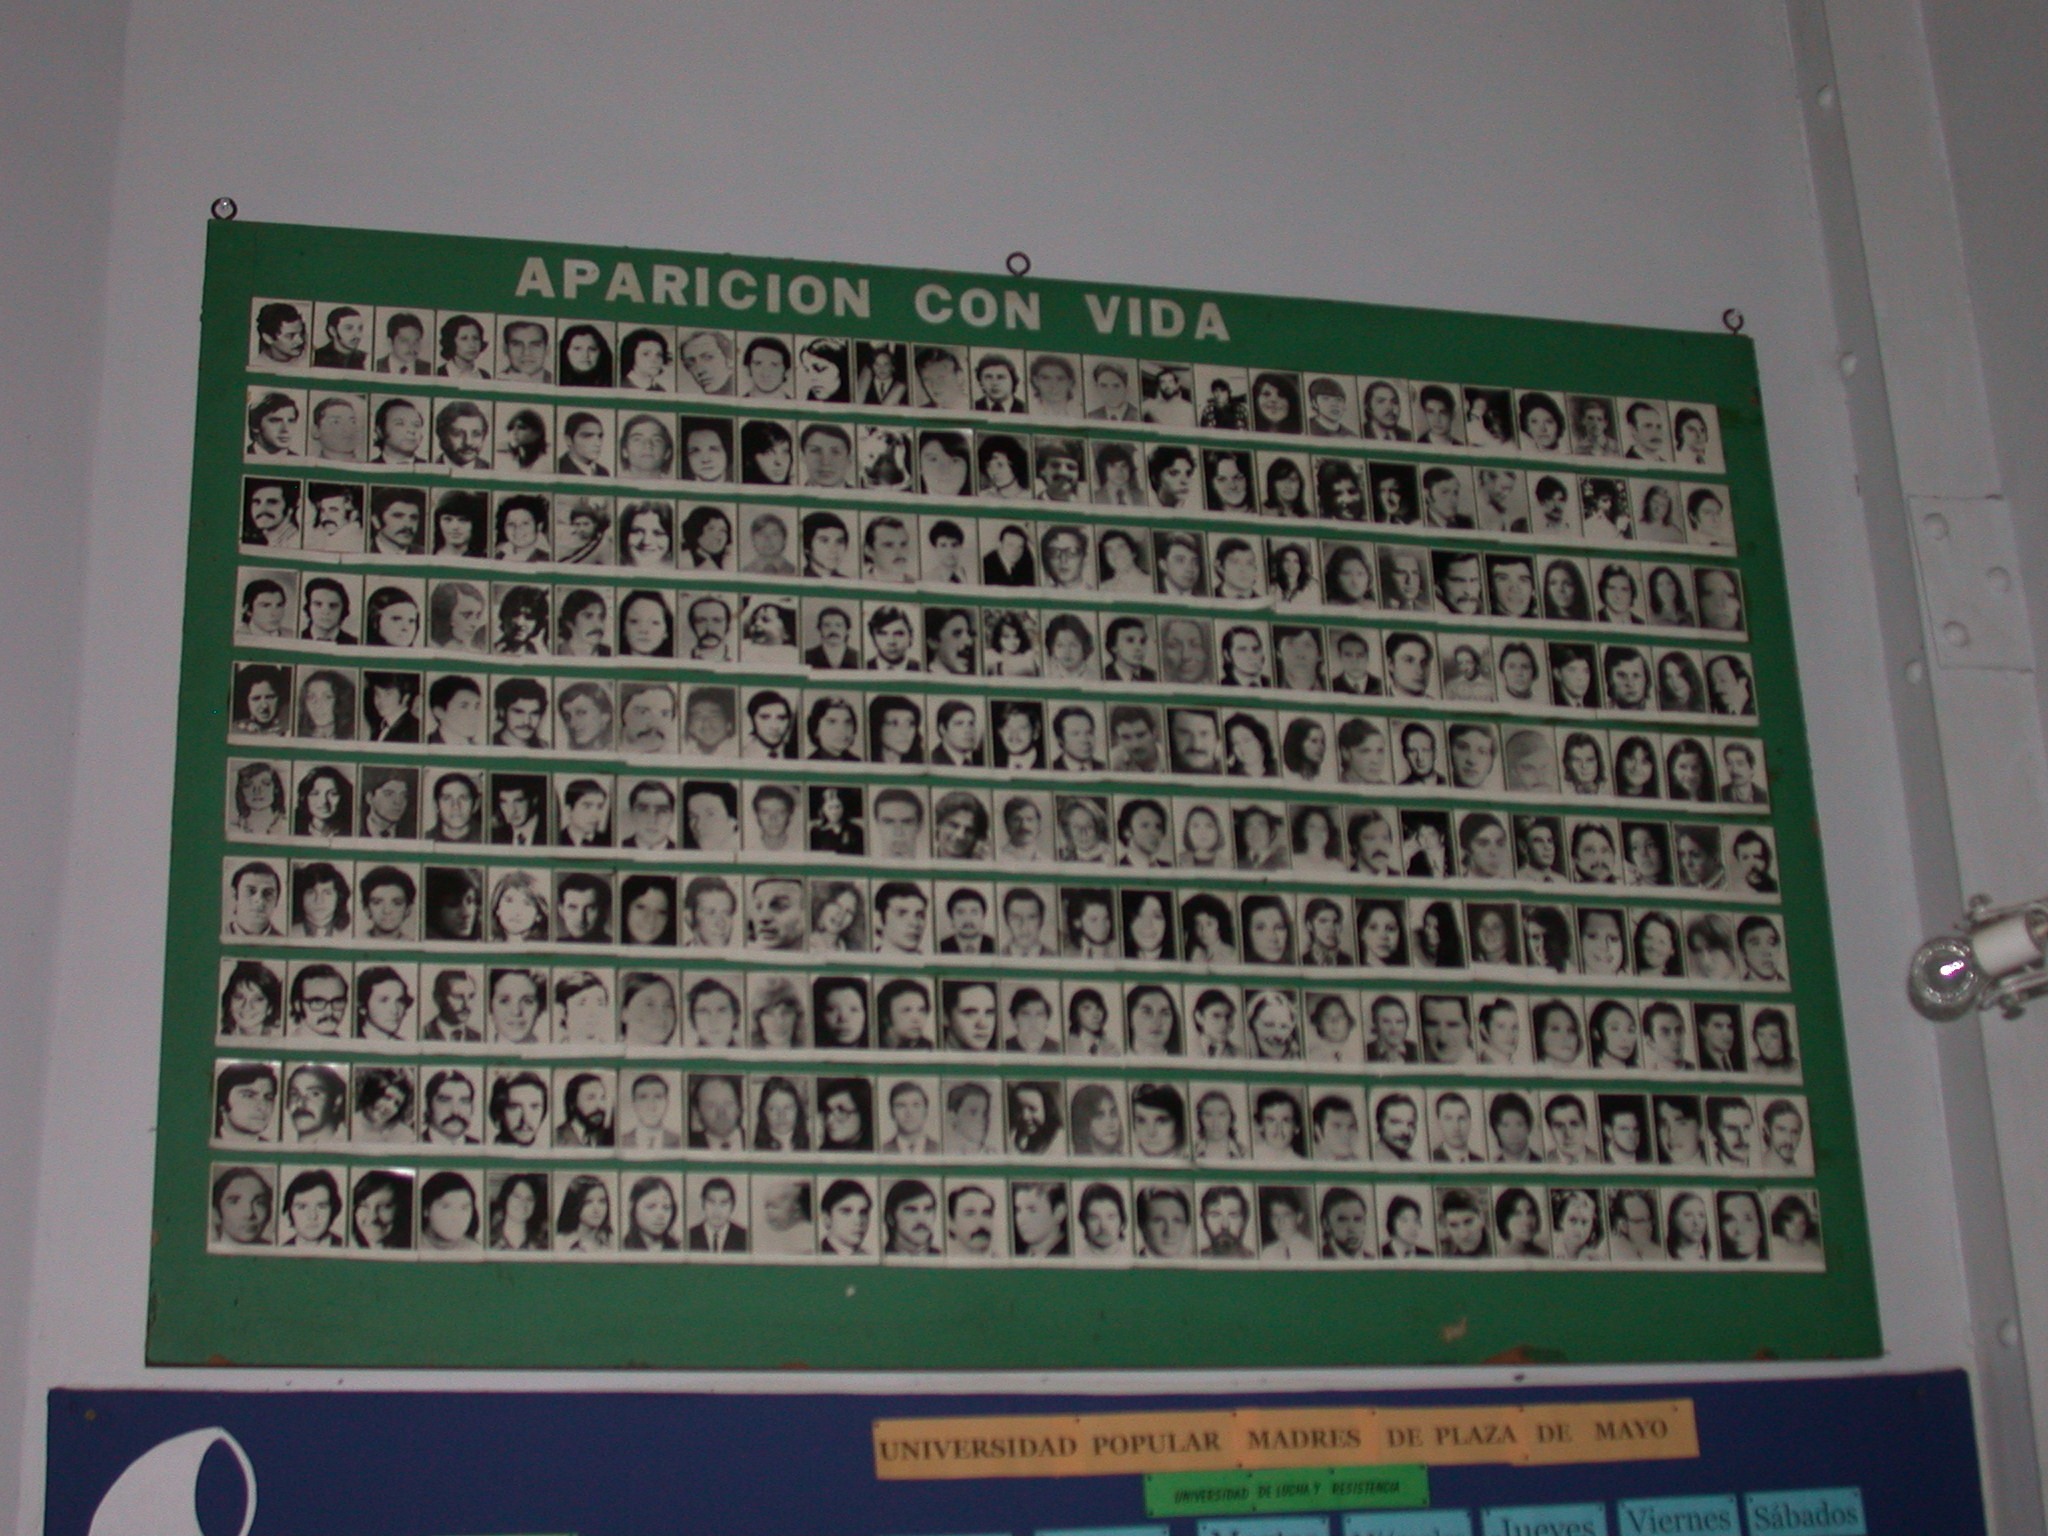 List of Disappeared Persons, Cafe de las Madres, Buenos Aires, Argentina